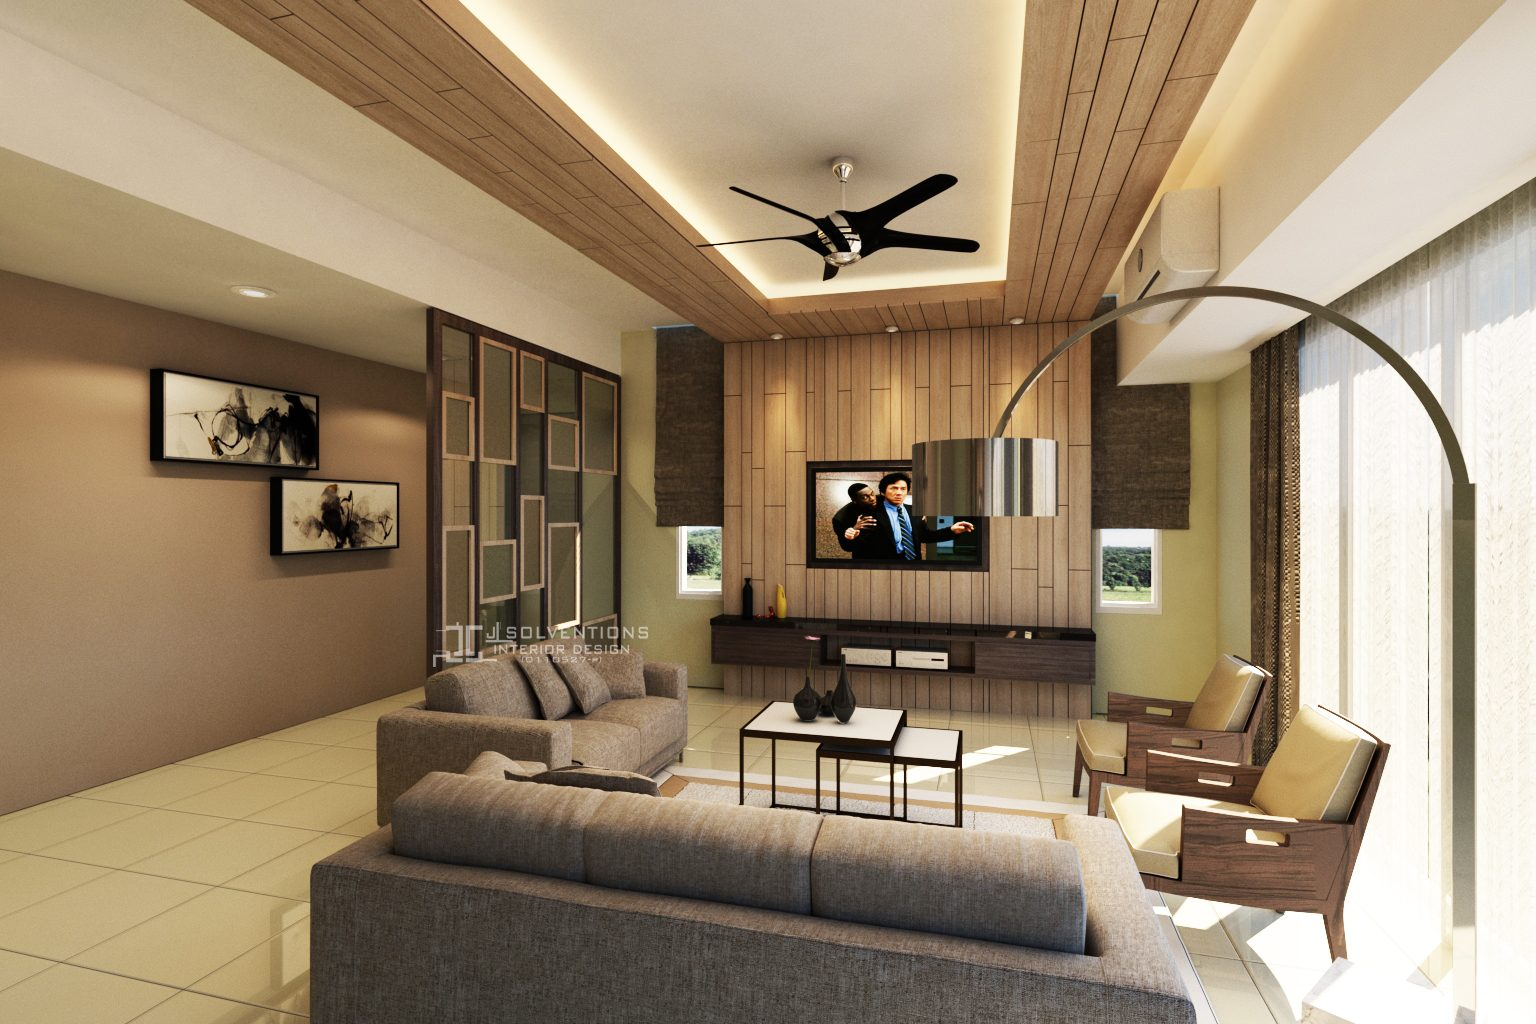 70 living room design ideas to welcome you home - Interior design ceiling living room ...